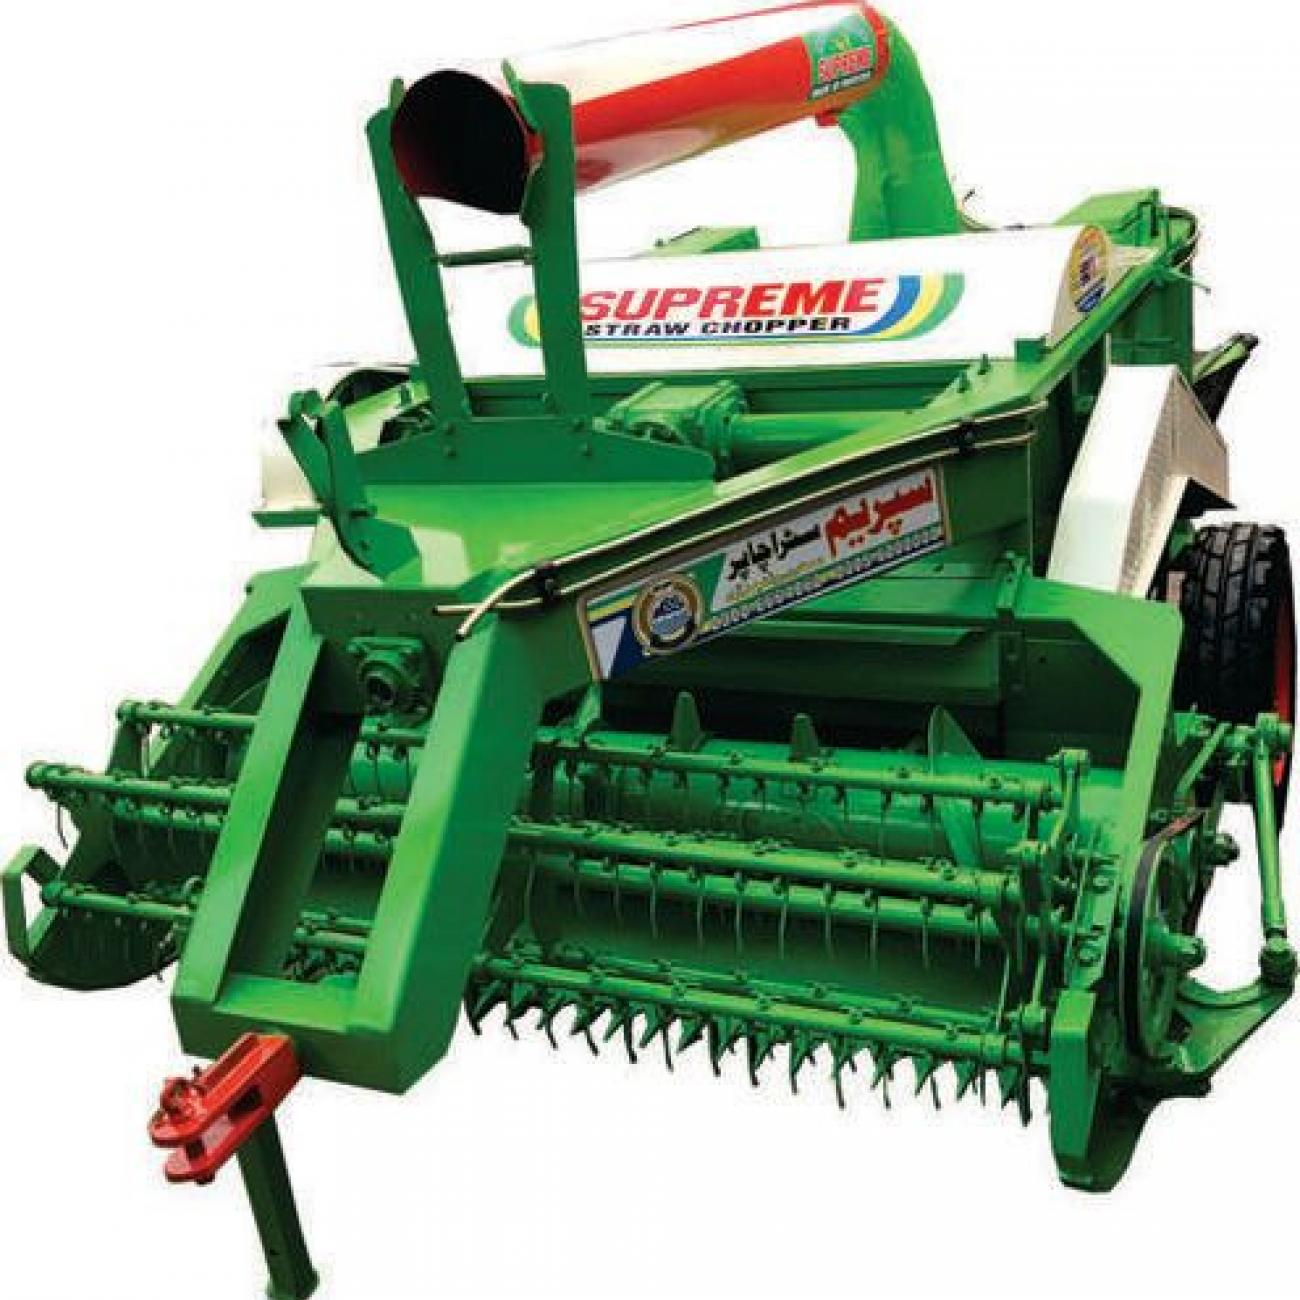 agricultural-straw-reaper-machine-844